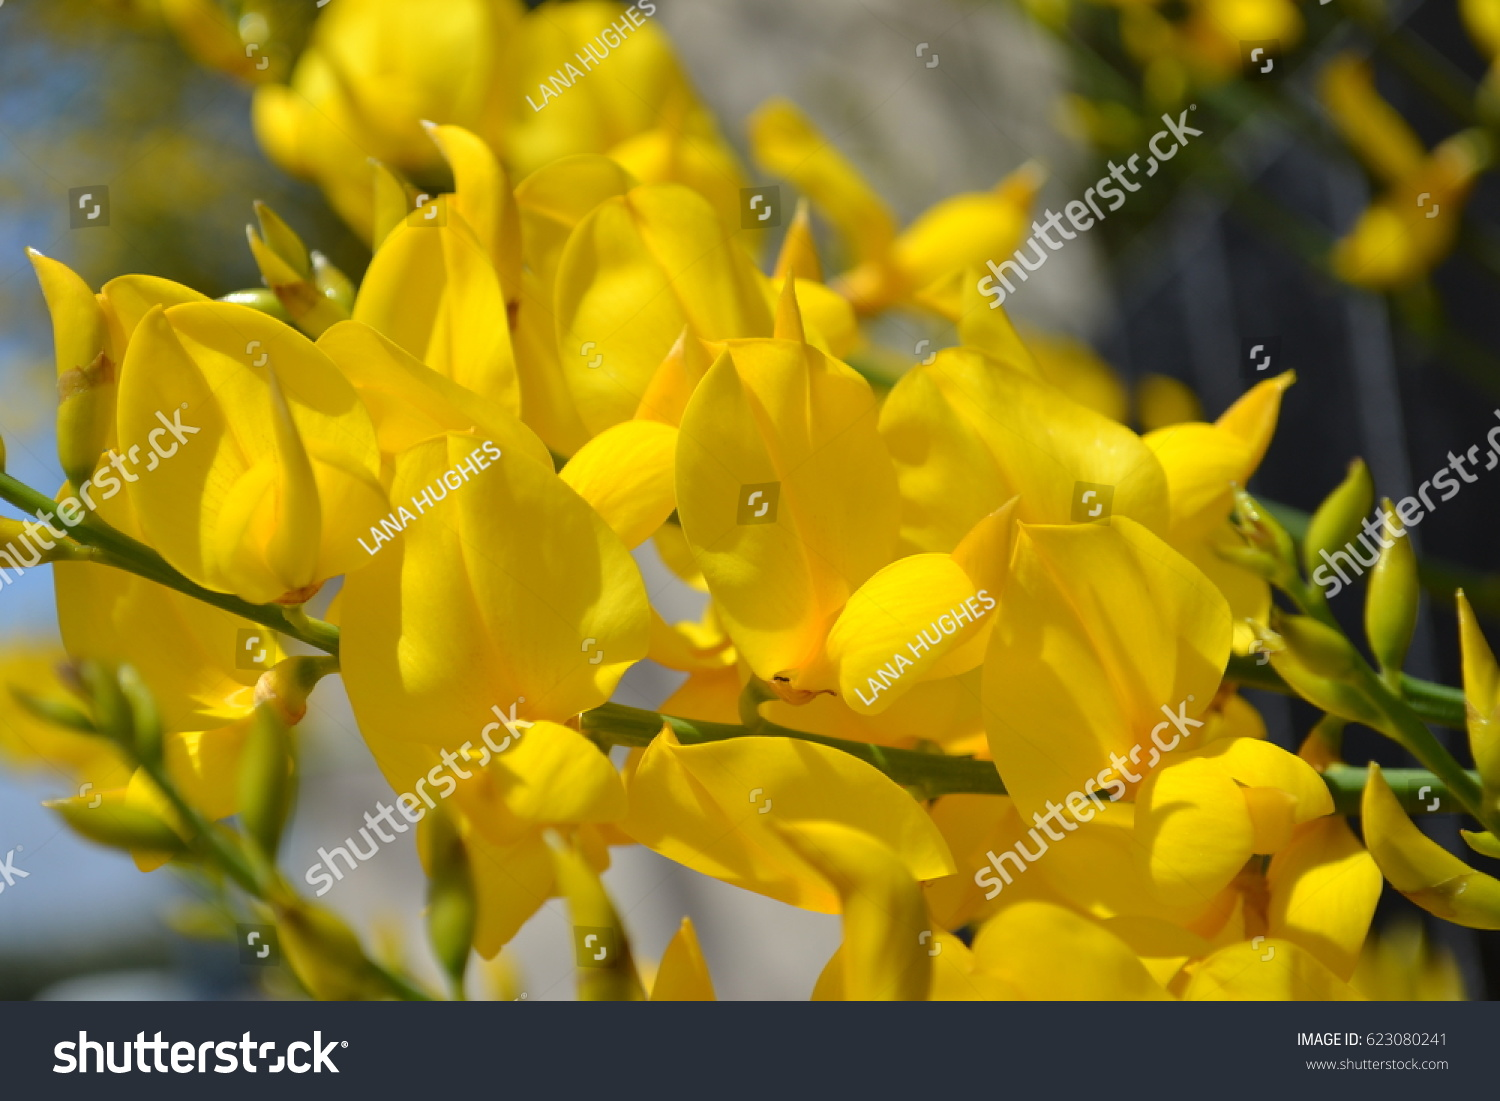 Flowering Shrub Gorse Spain Yellow Gorse Stock Photo Edit Now